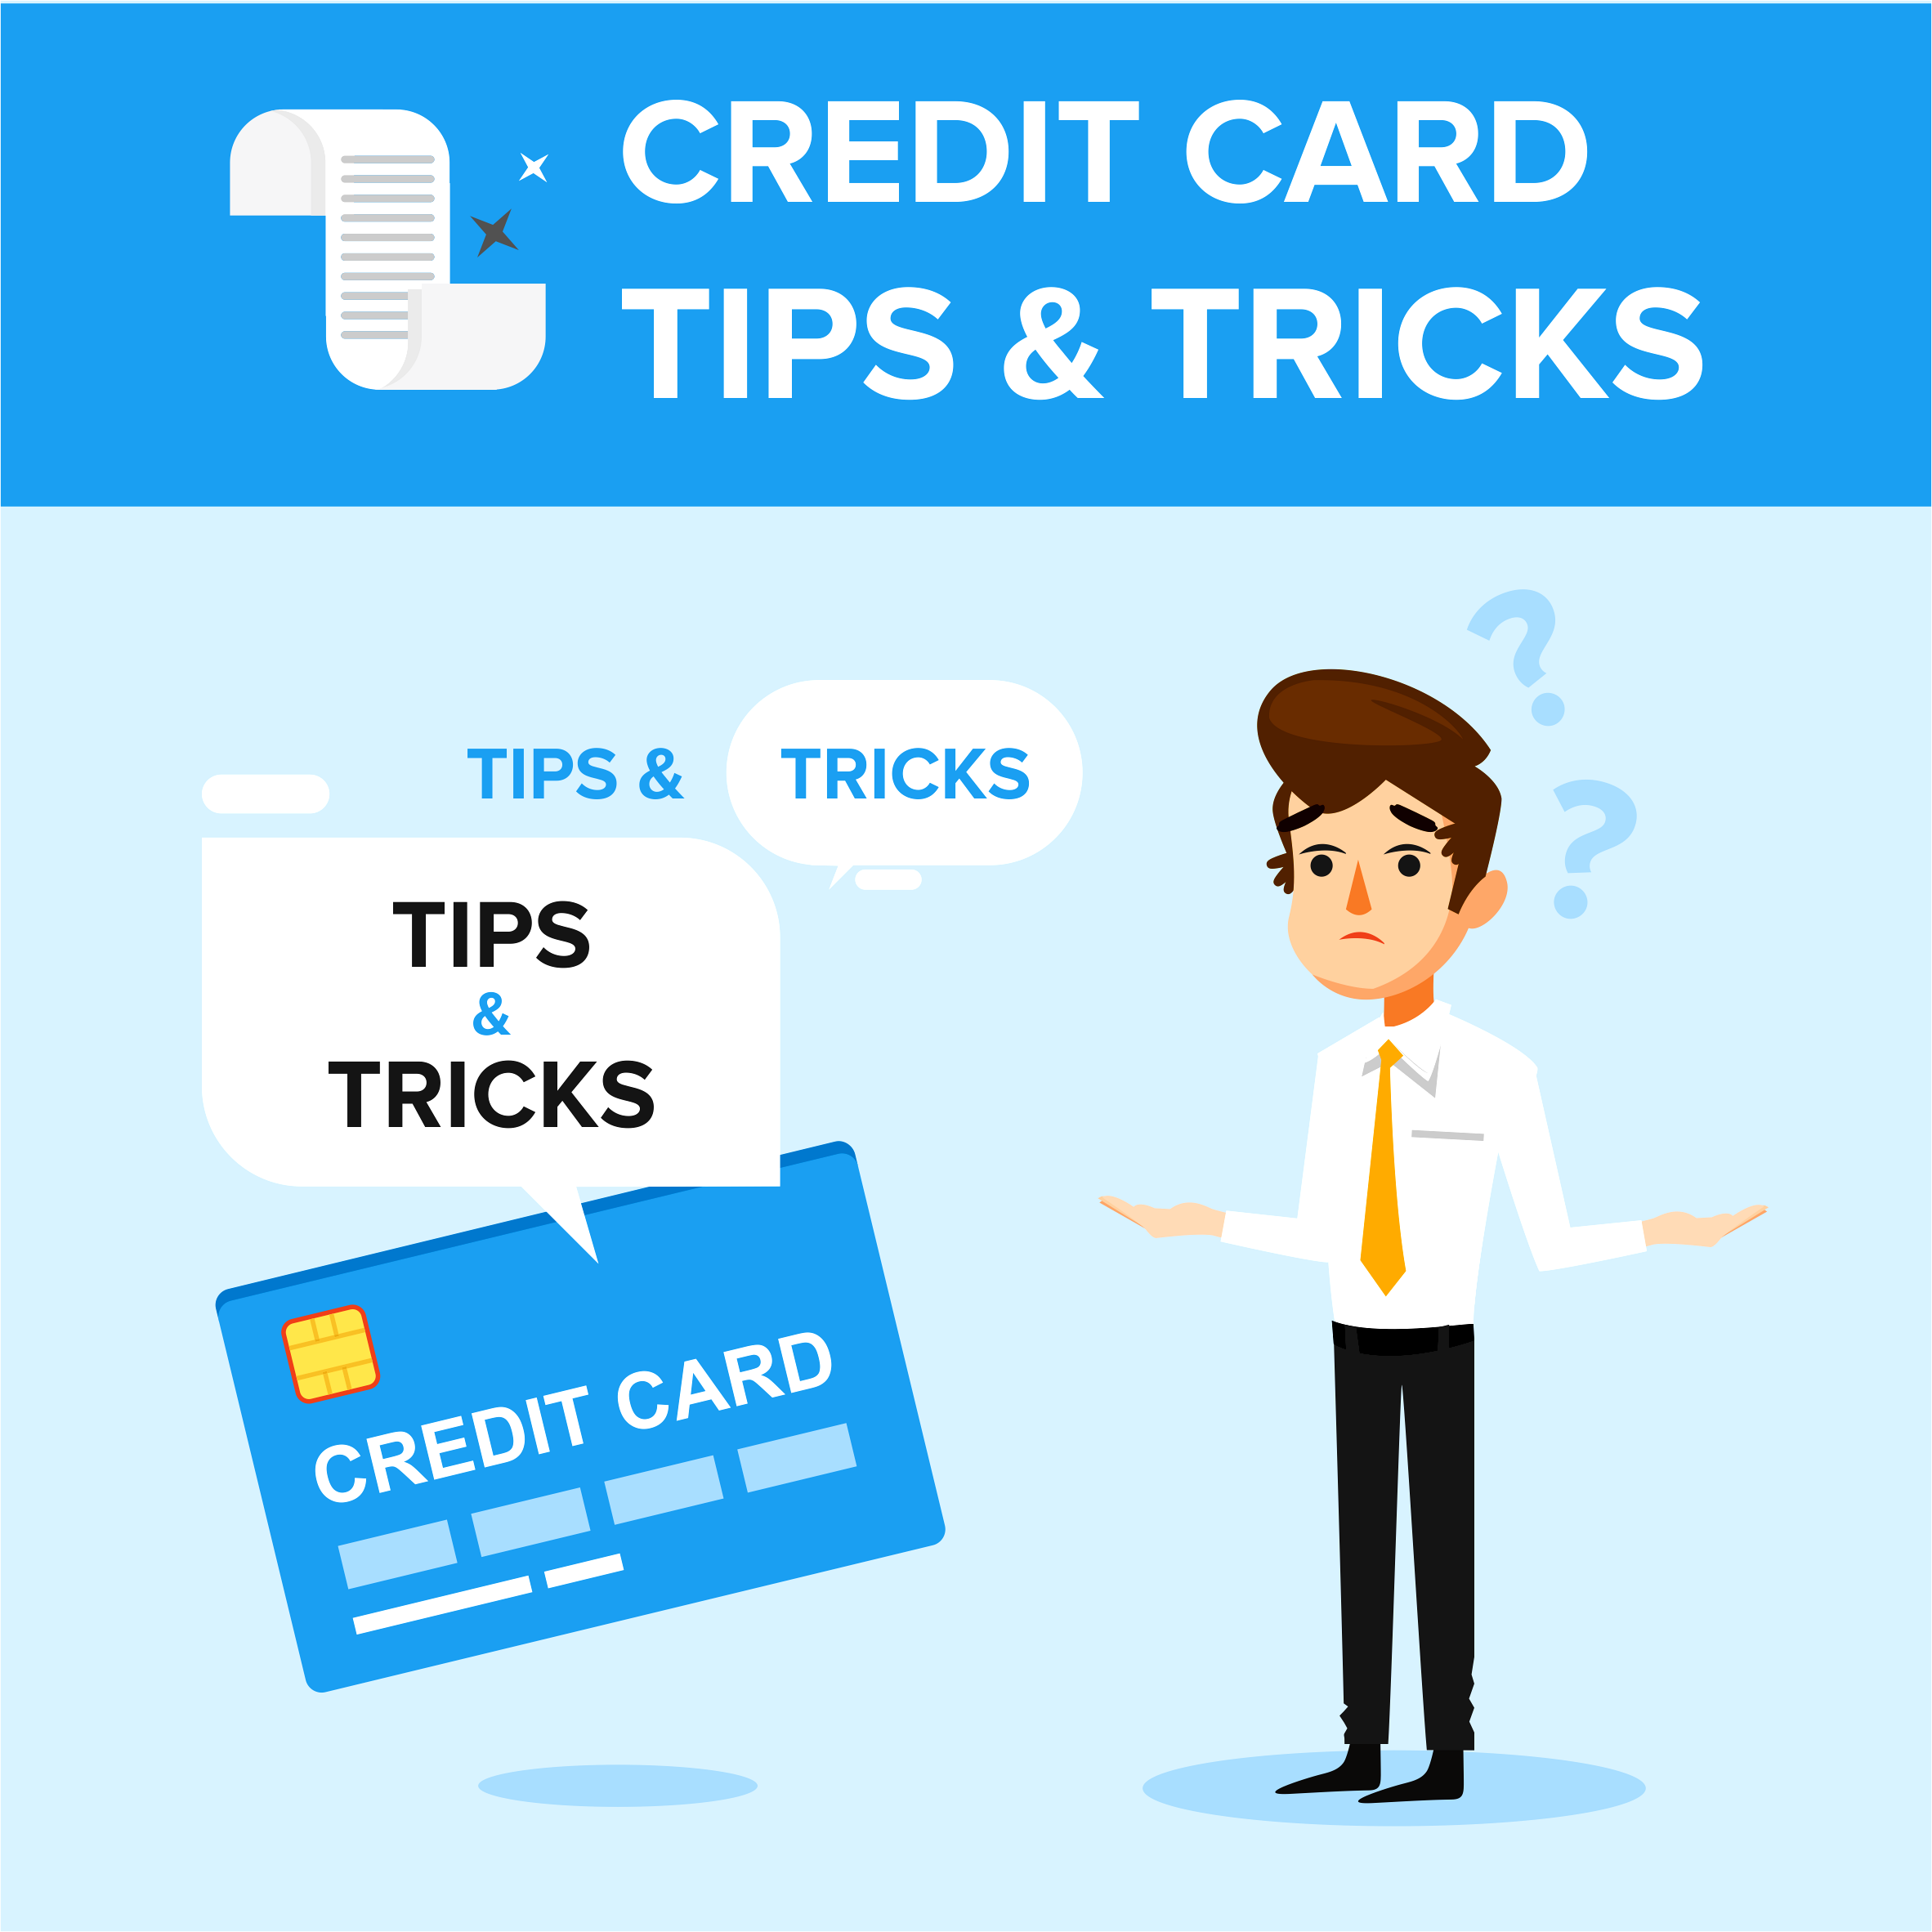 Credit Card Tips & Tricks